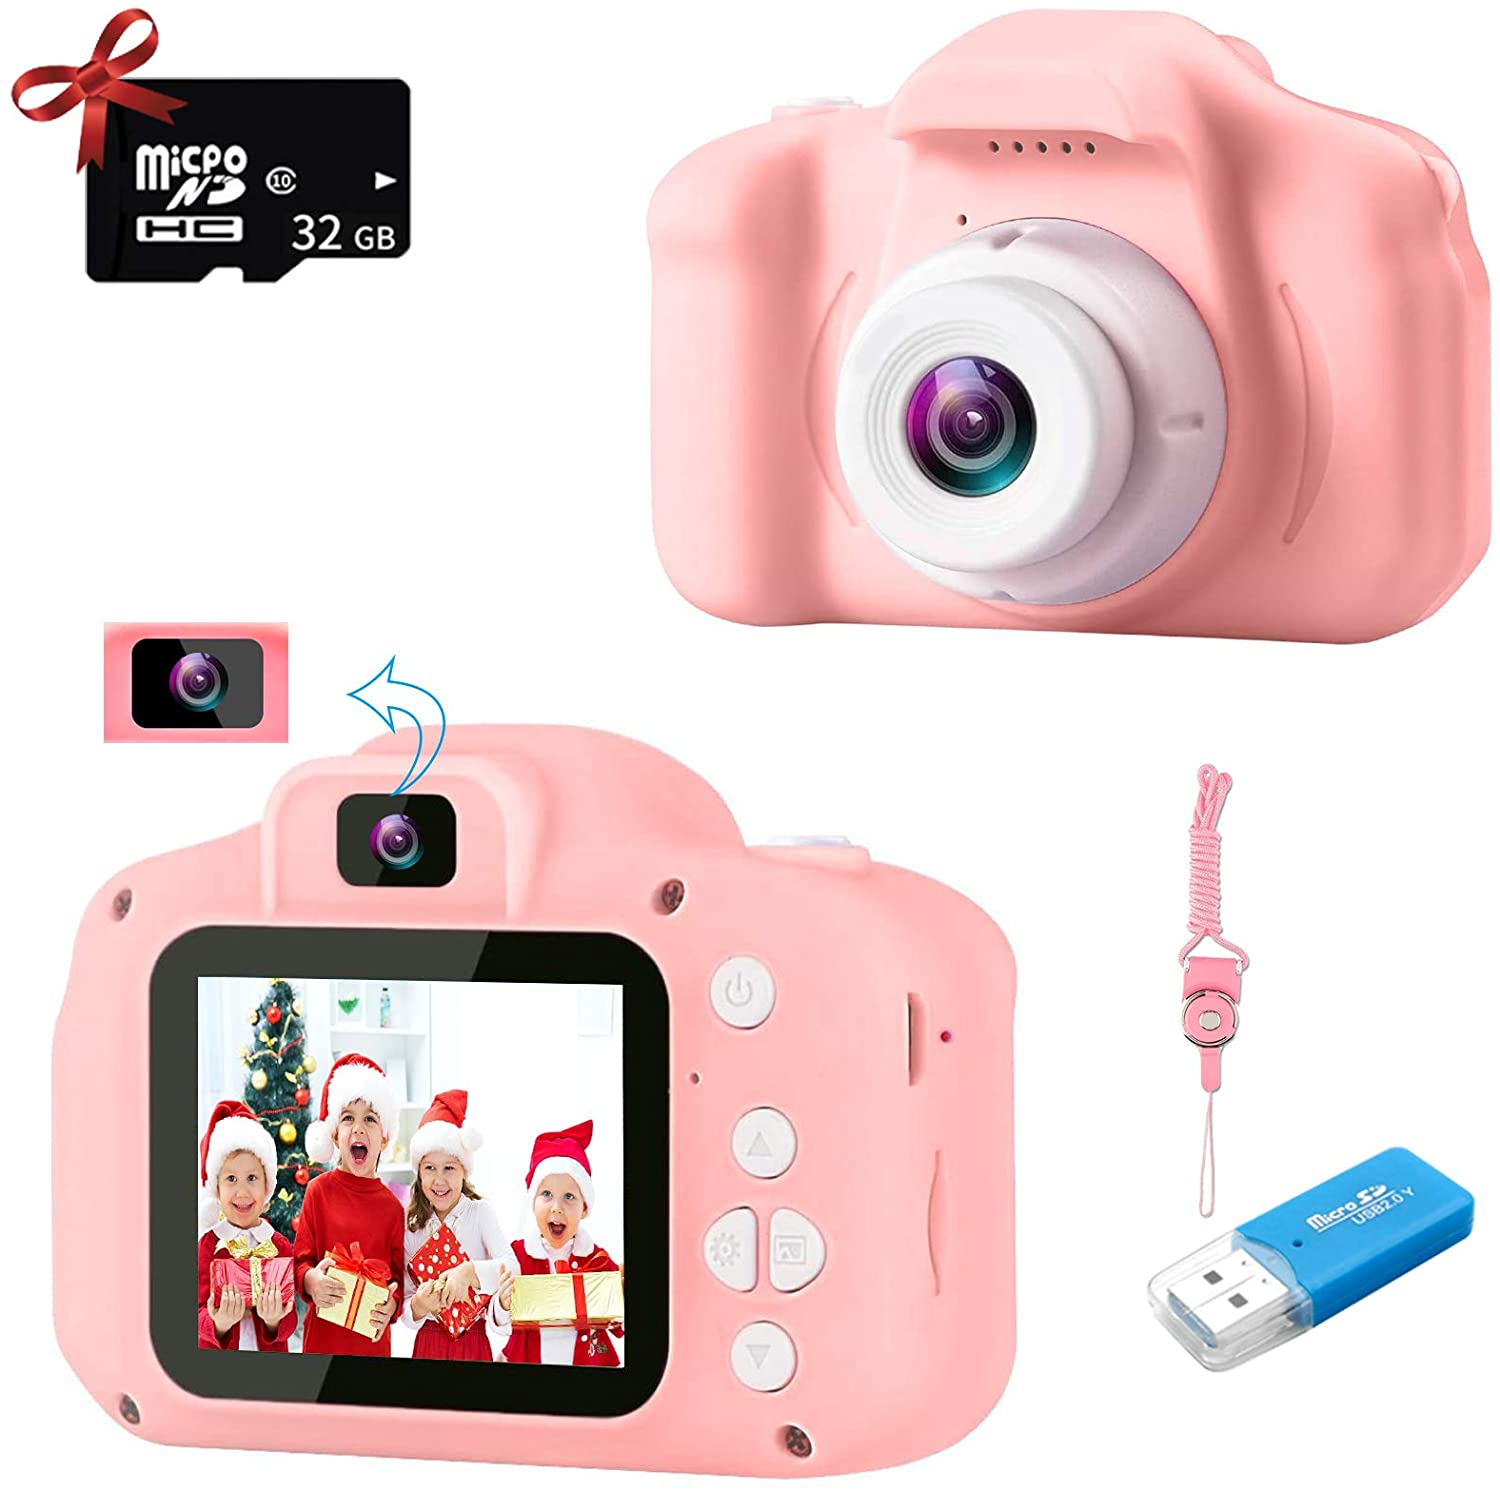 Kids Camera, 20MP Digital Camera for Girls Dual Lens HD 1080P Pink Kids Selfie Camera, Toddler Camera for Kids Age 3 4 5 6 7 8 9 Years Old Birthday Holiday Toy Gifts Mini Toy Camera with 32GB Card